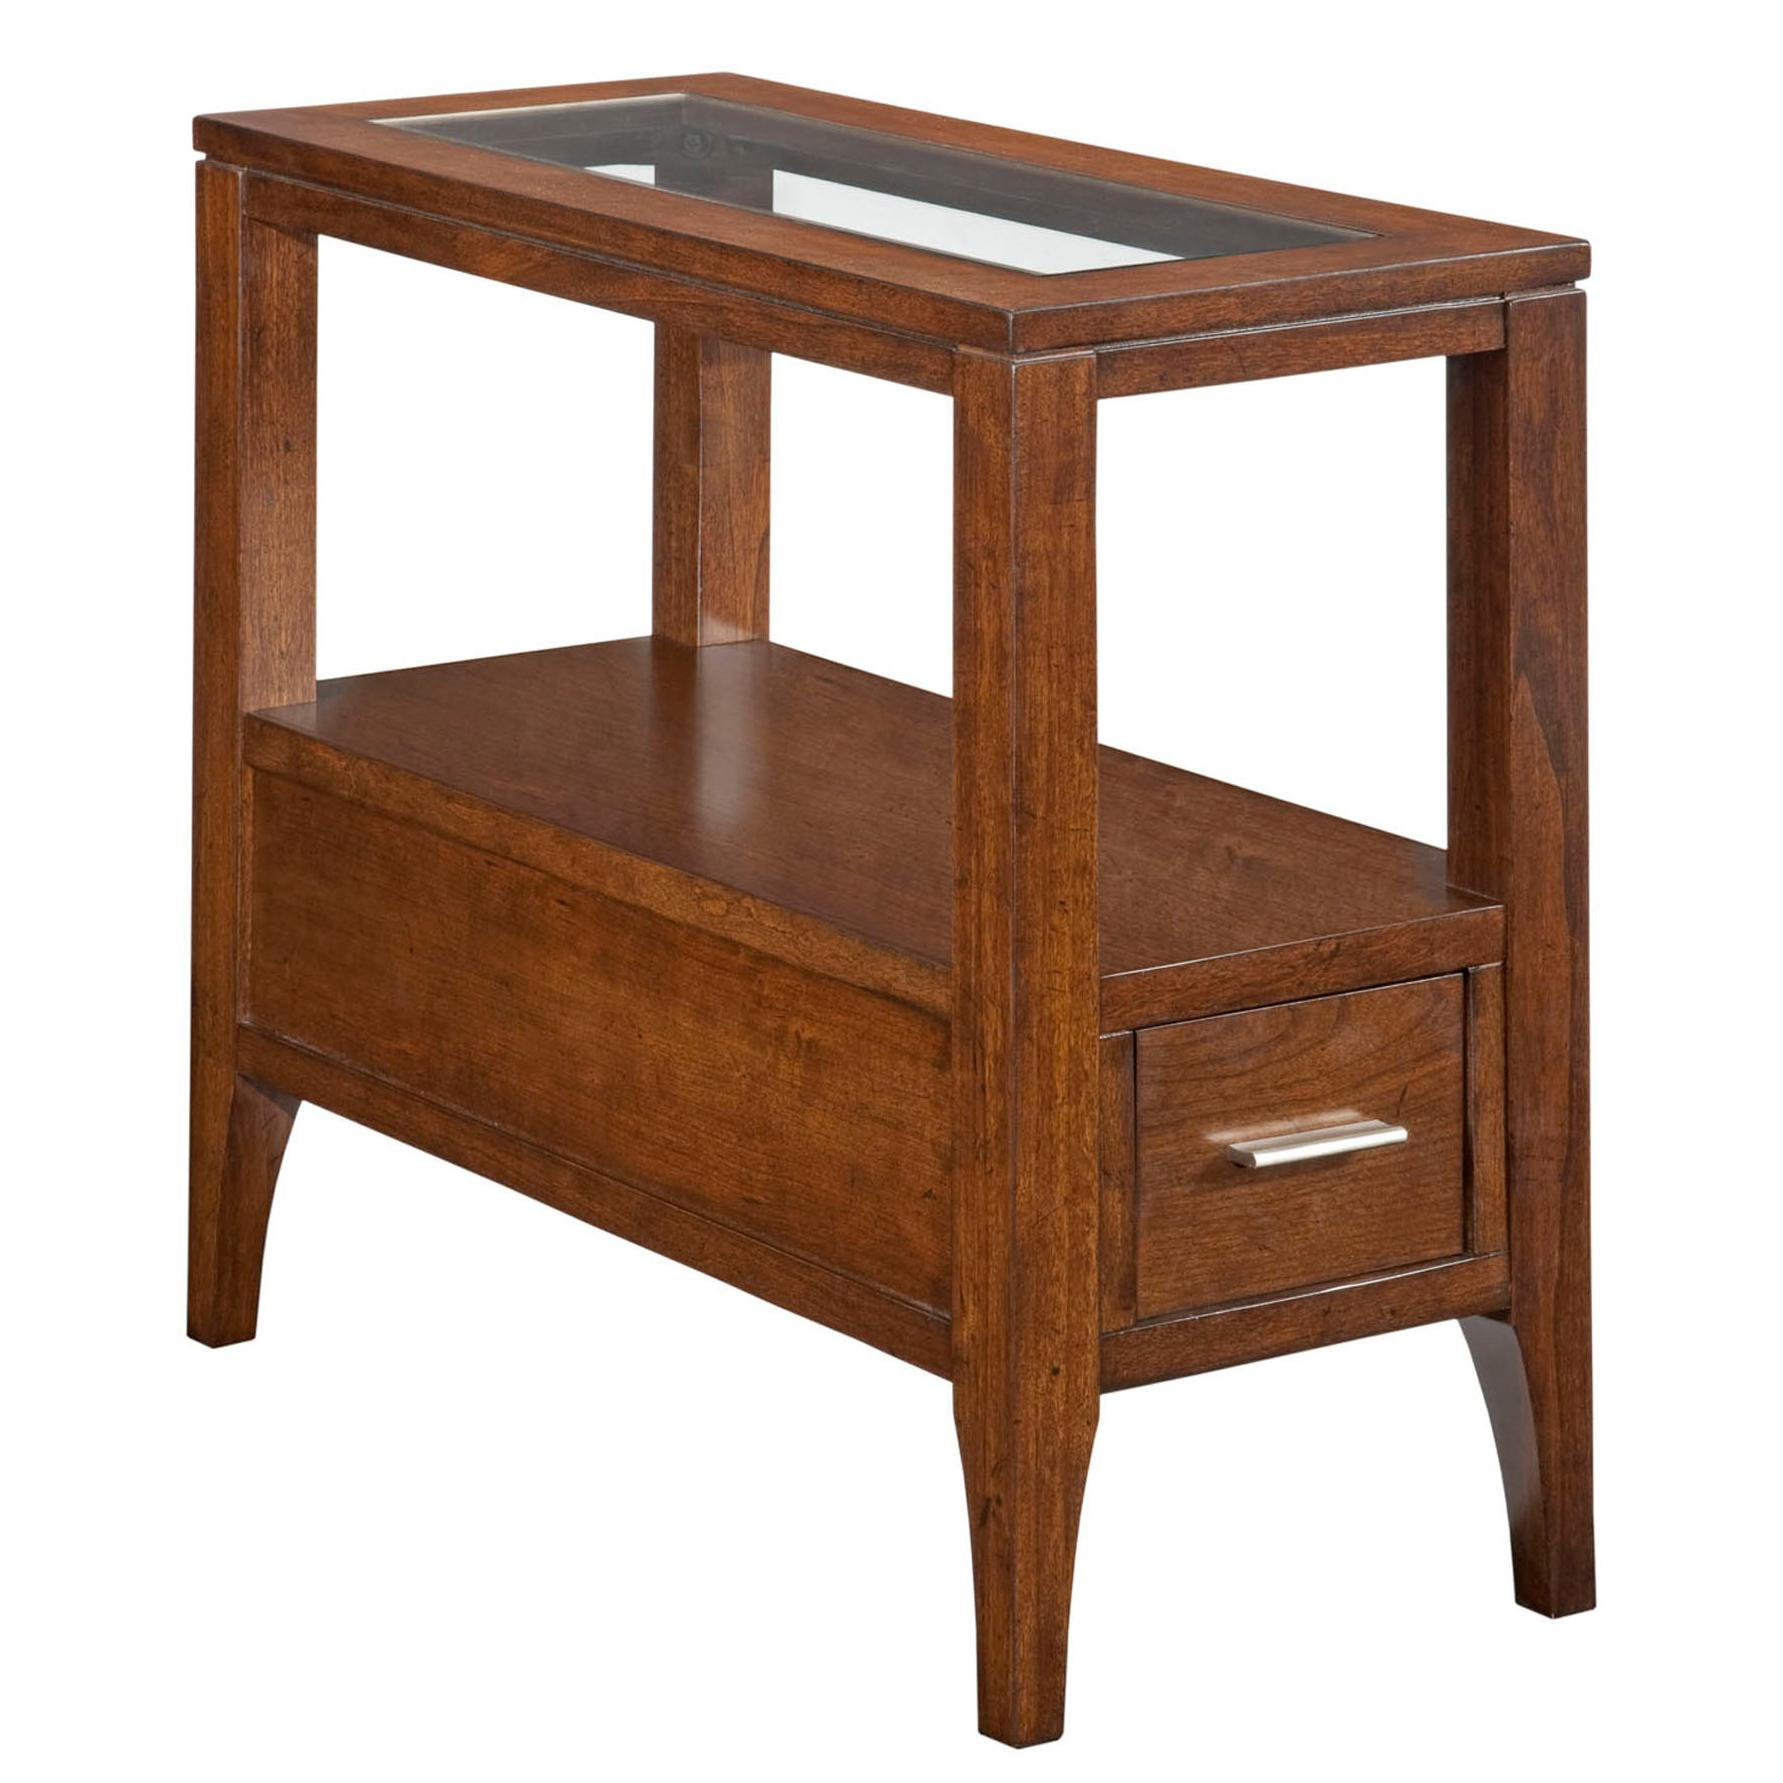 Broyhill Furniture Arland Chairside Table - Item Number: 3418-004